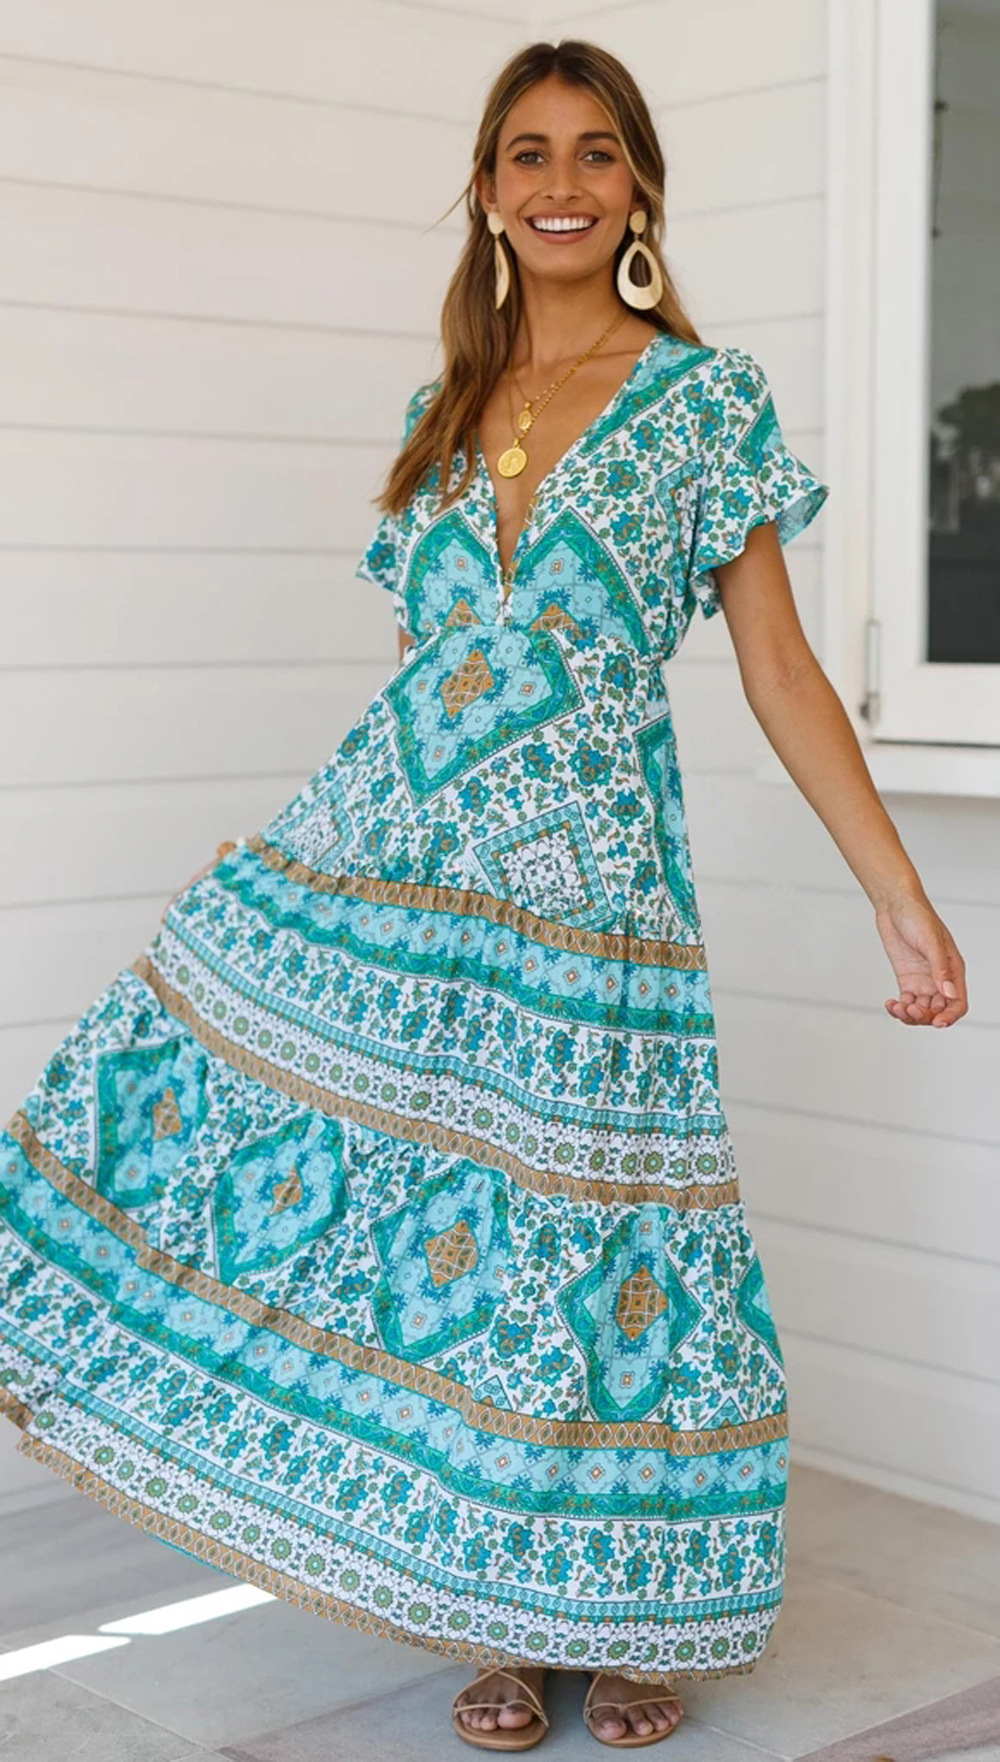 spring and summer new bohemian vintage print cuff stitching ruffled v-neck dress NSDF512